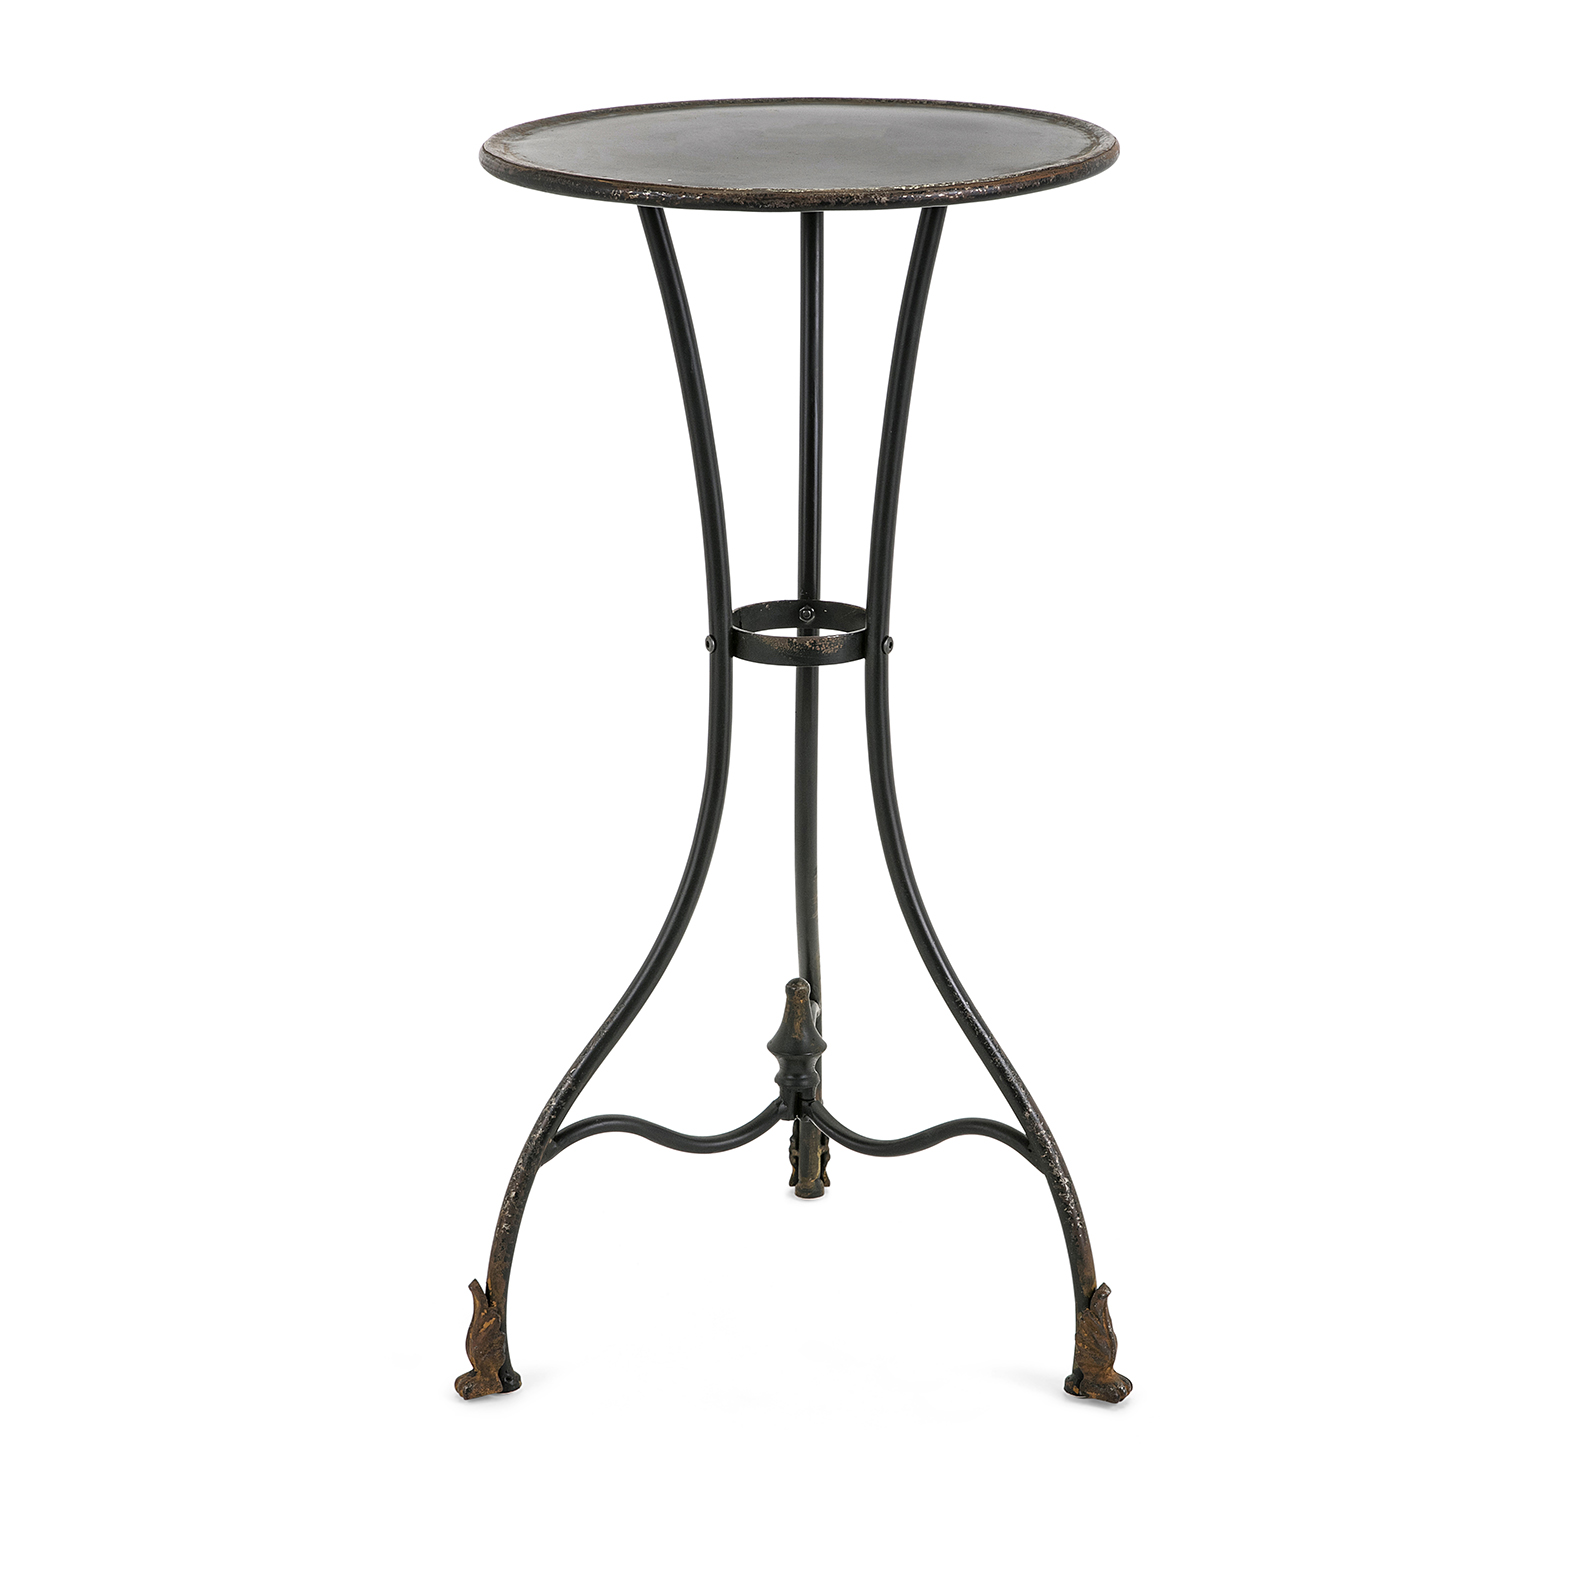 cliffton large metal accent table roost and galley slim round wood tables pier imports coupon off total entire purchase end outside chair covers patio with umbrella hole pottery